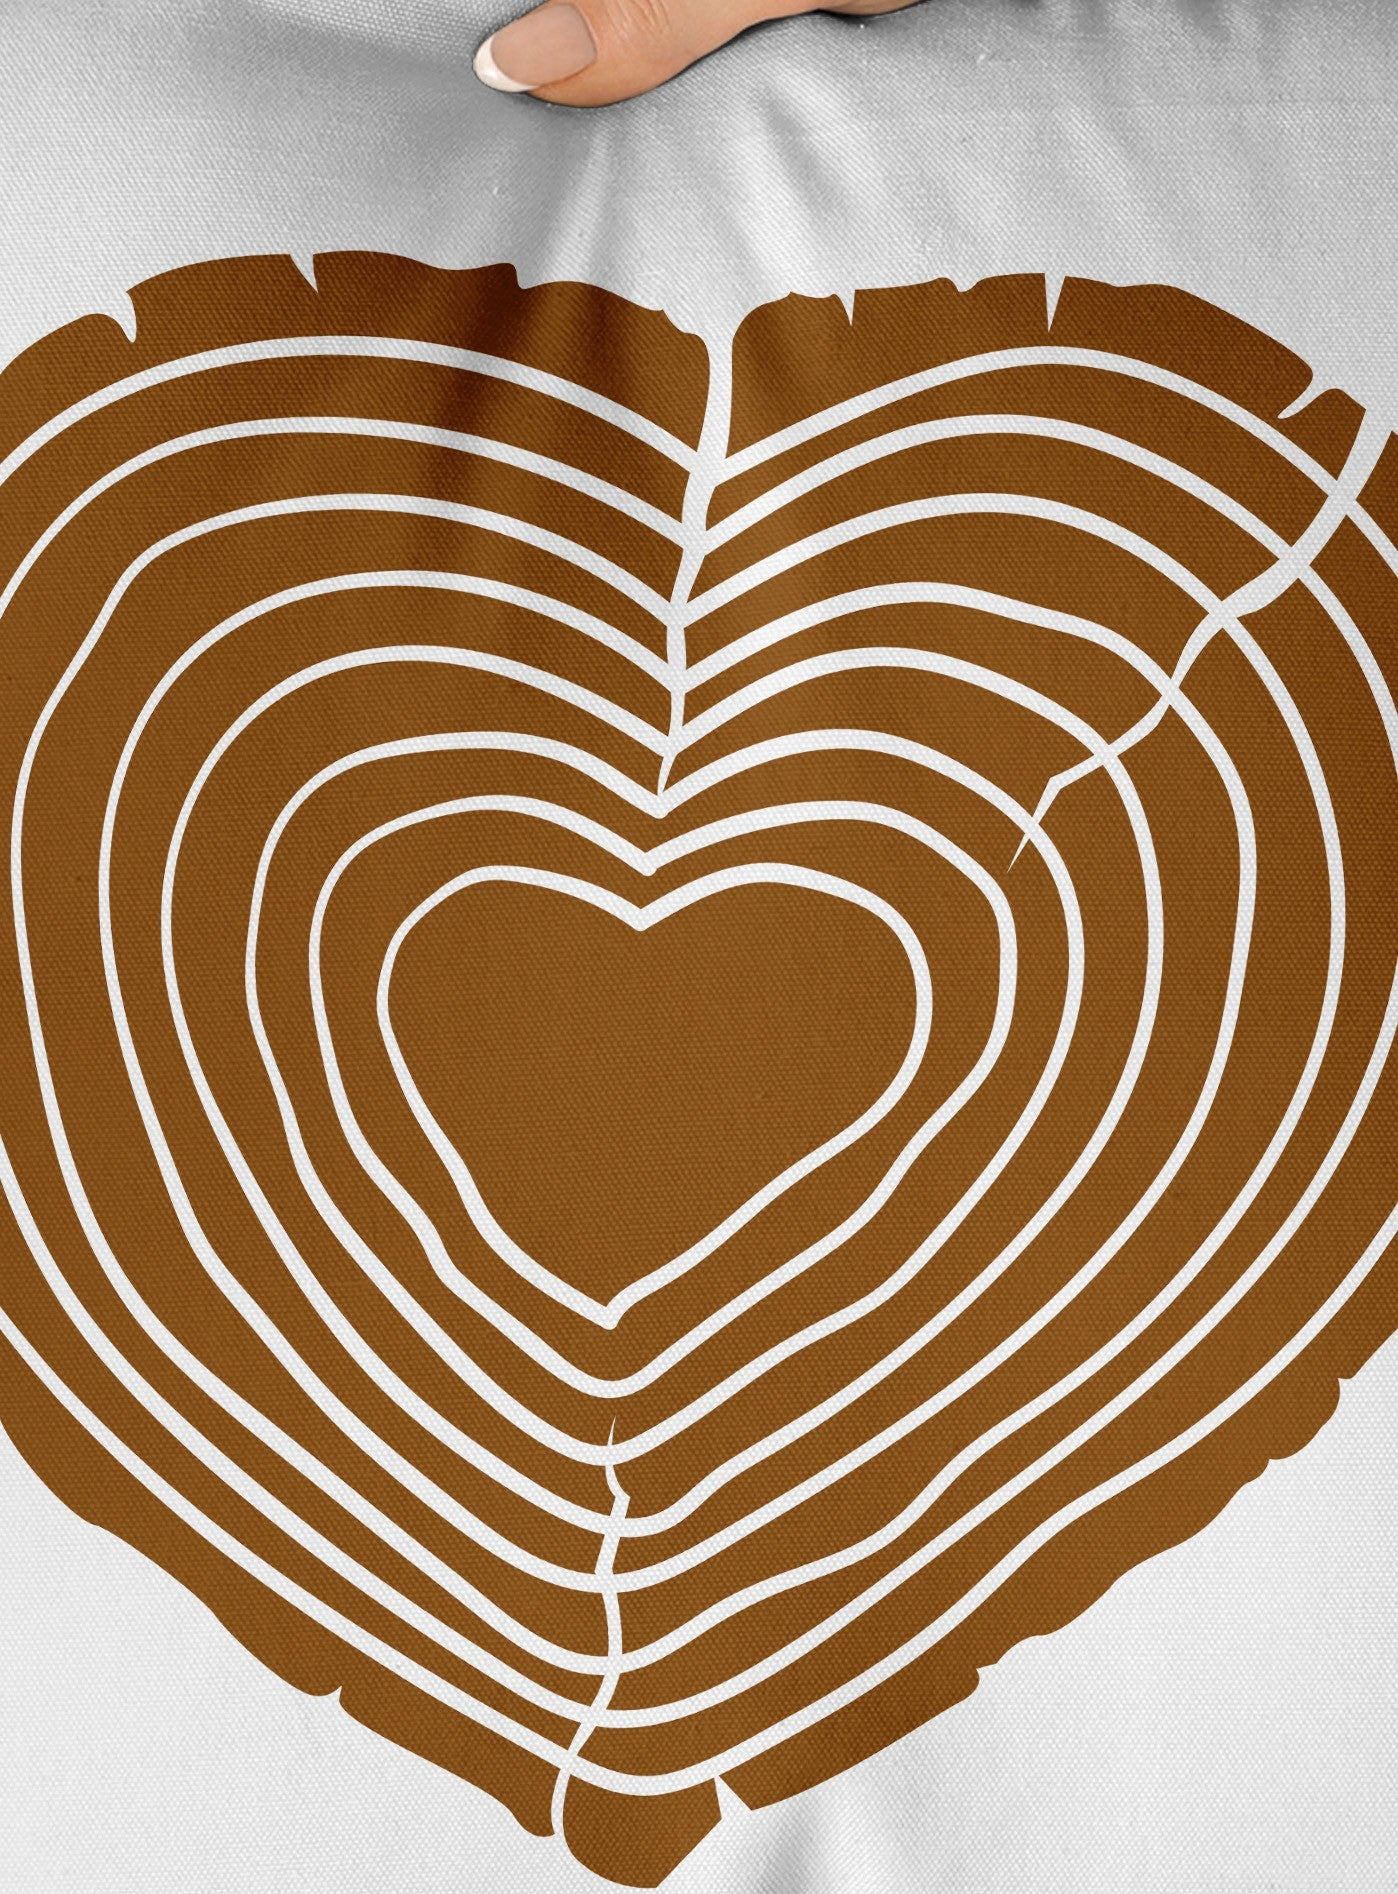 Tree of heart párna